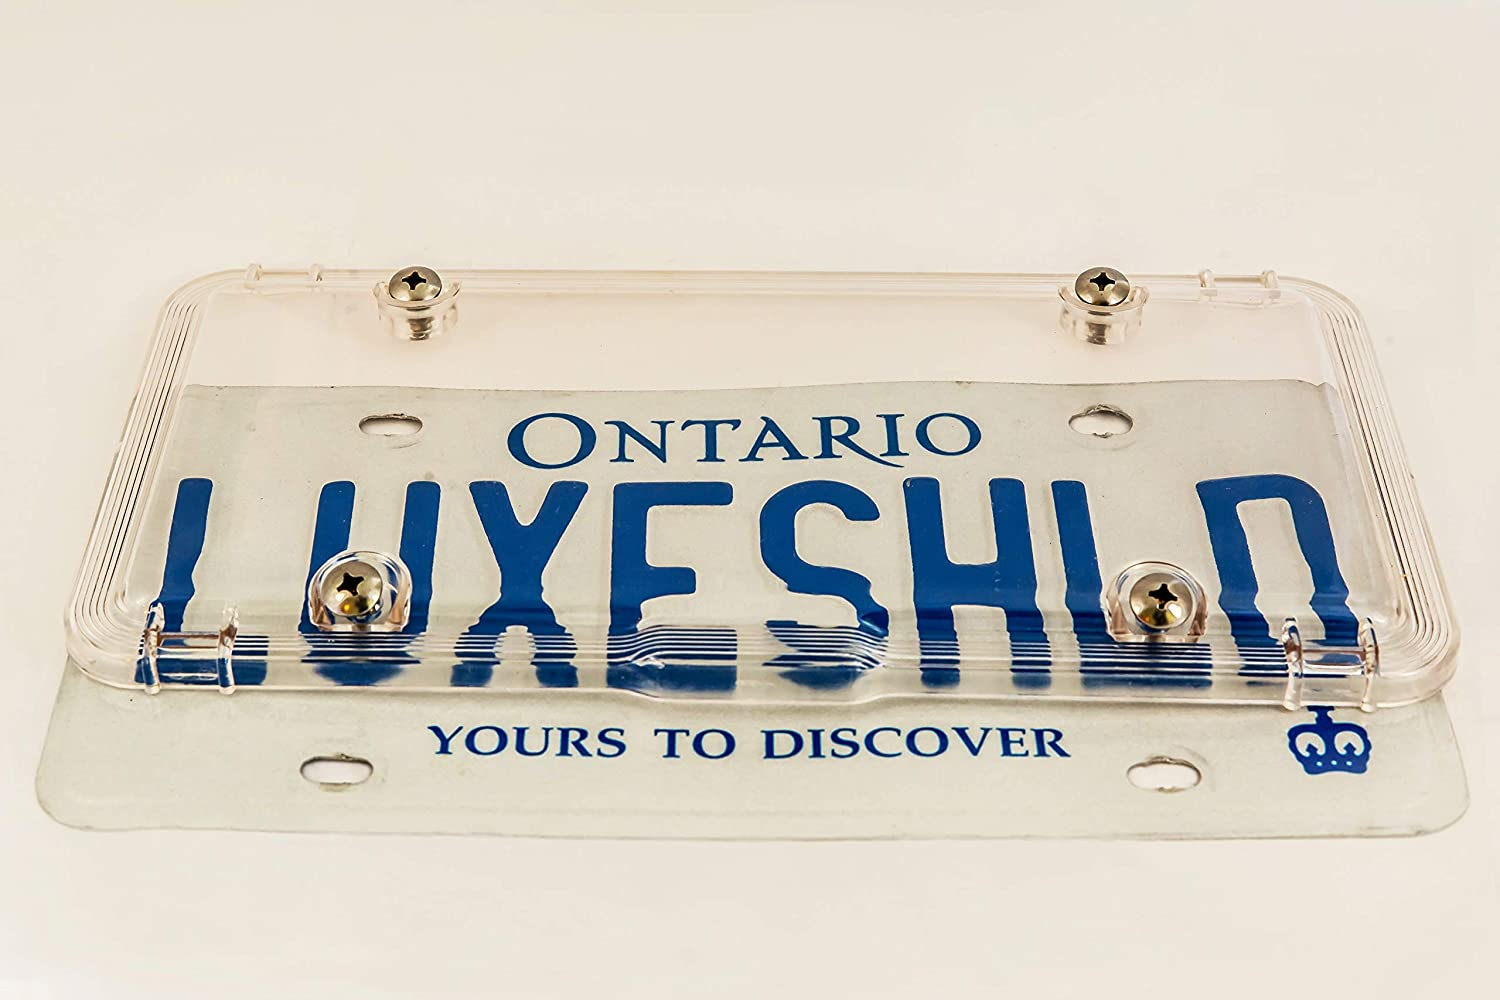 Premium Quality 100/% Recycled Industrial-Strength Polycarbonate License Plate Shields incl 8 Stainless Steel Screws Two License Covers Luxe Shield Clear License Plate Covers Built for Canada 2 Pack